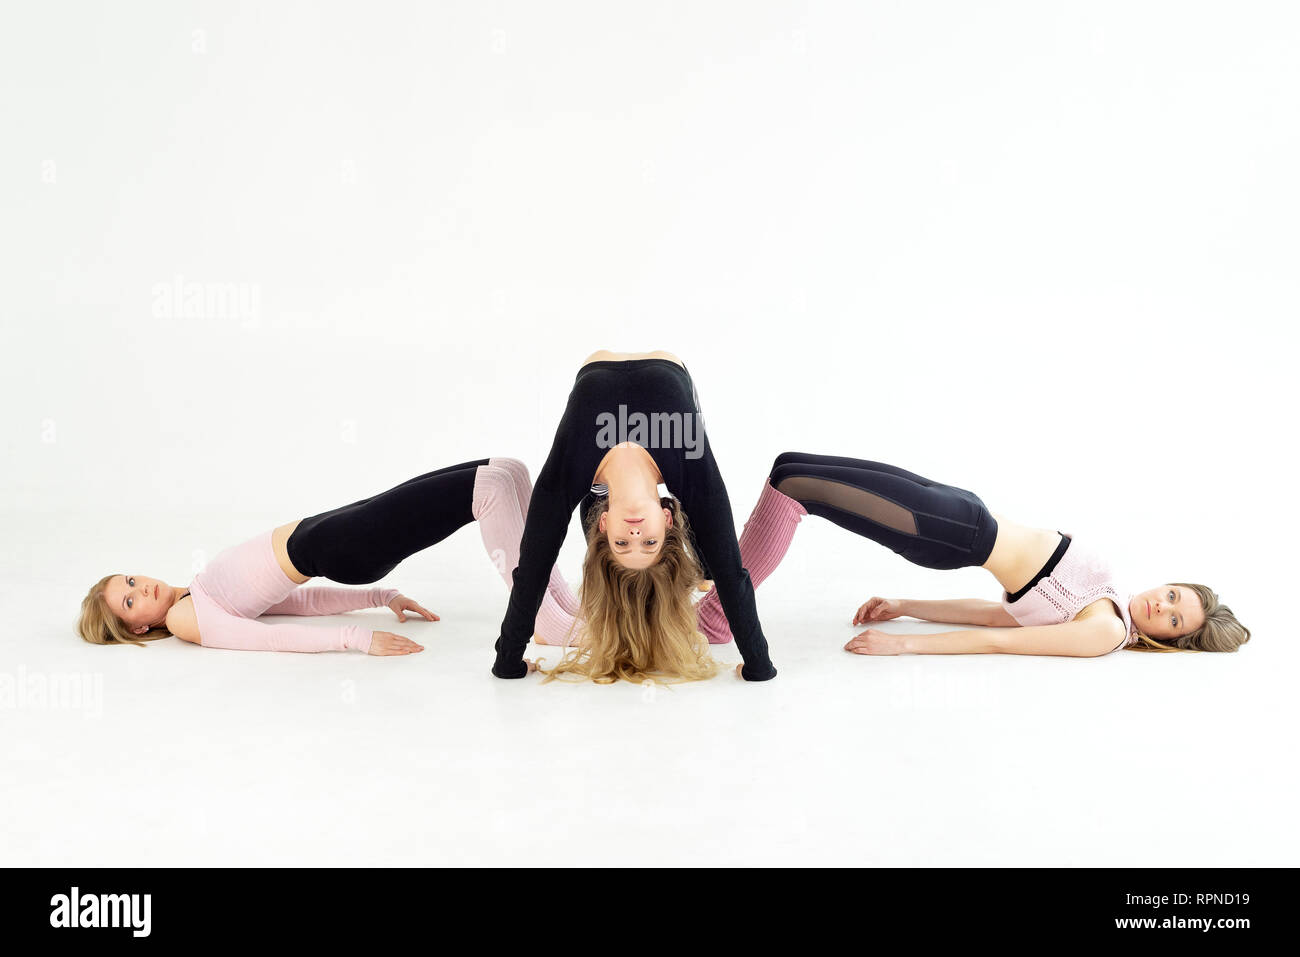 young sport girl practicing yoga, pilates bend over backwards. white background - Stock Image